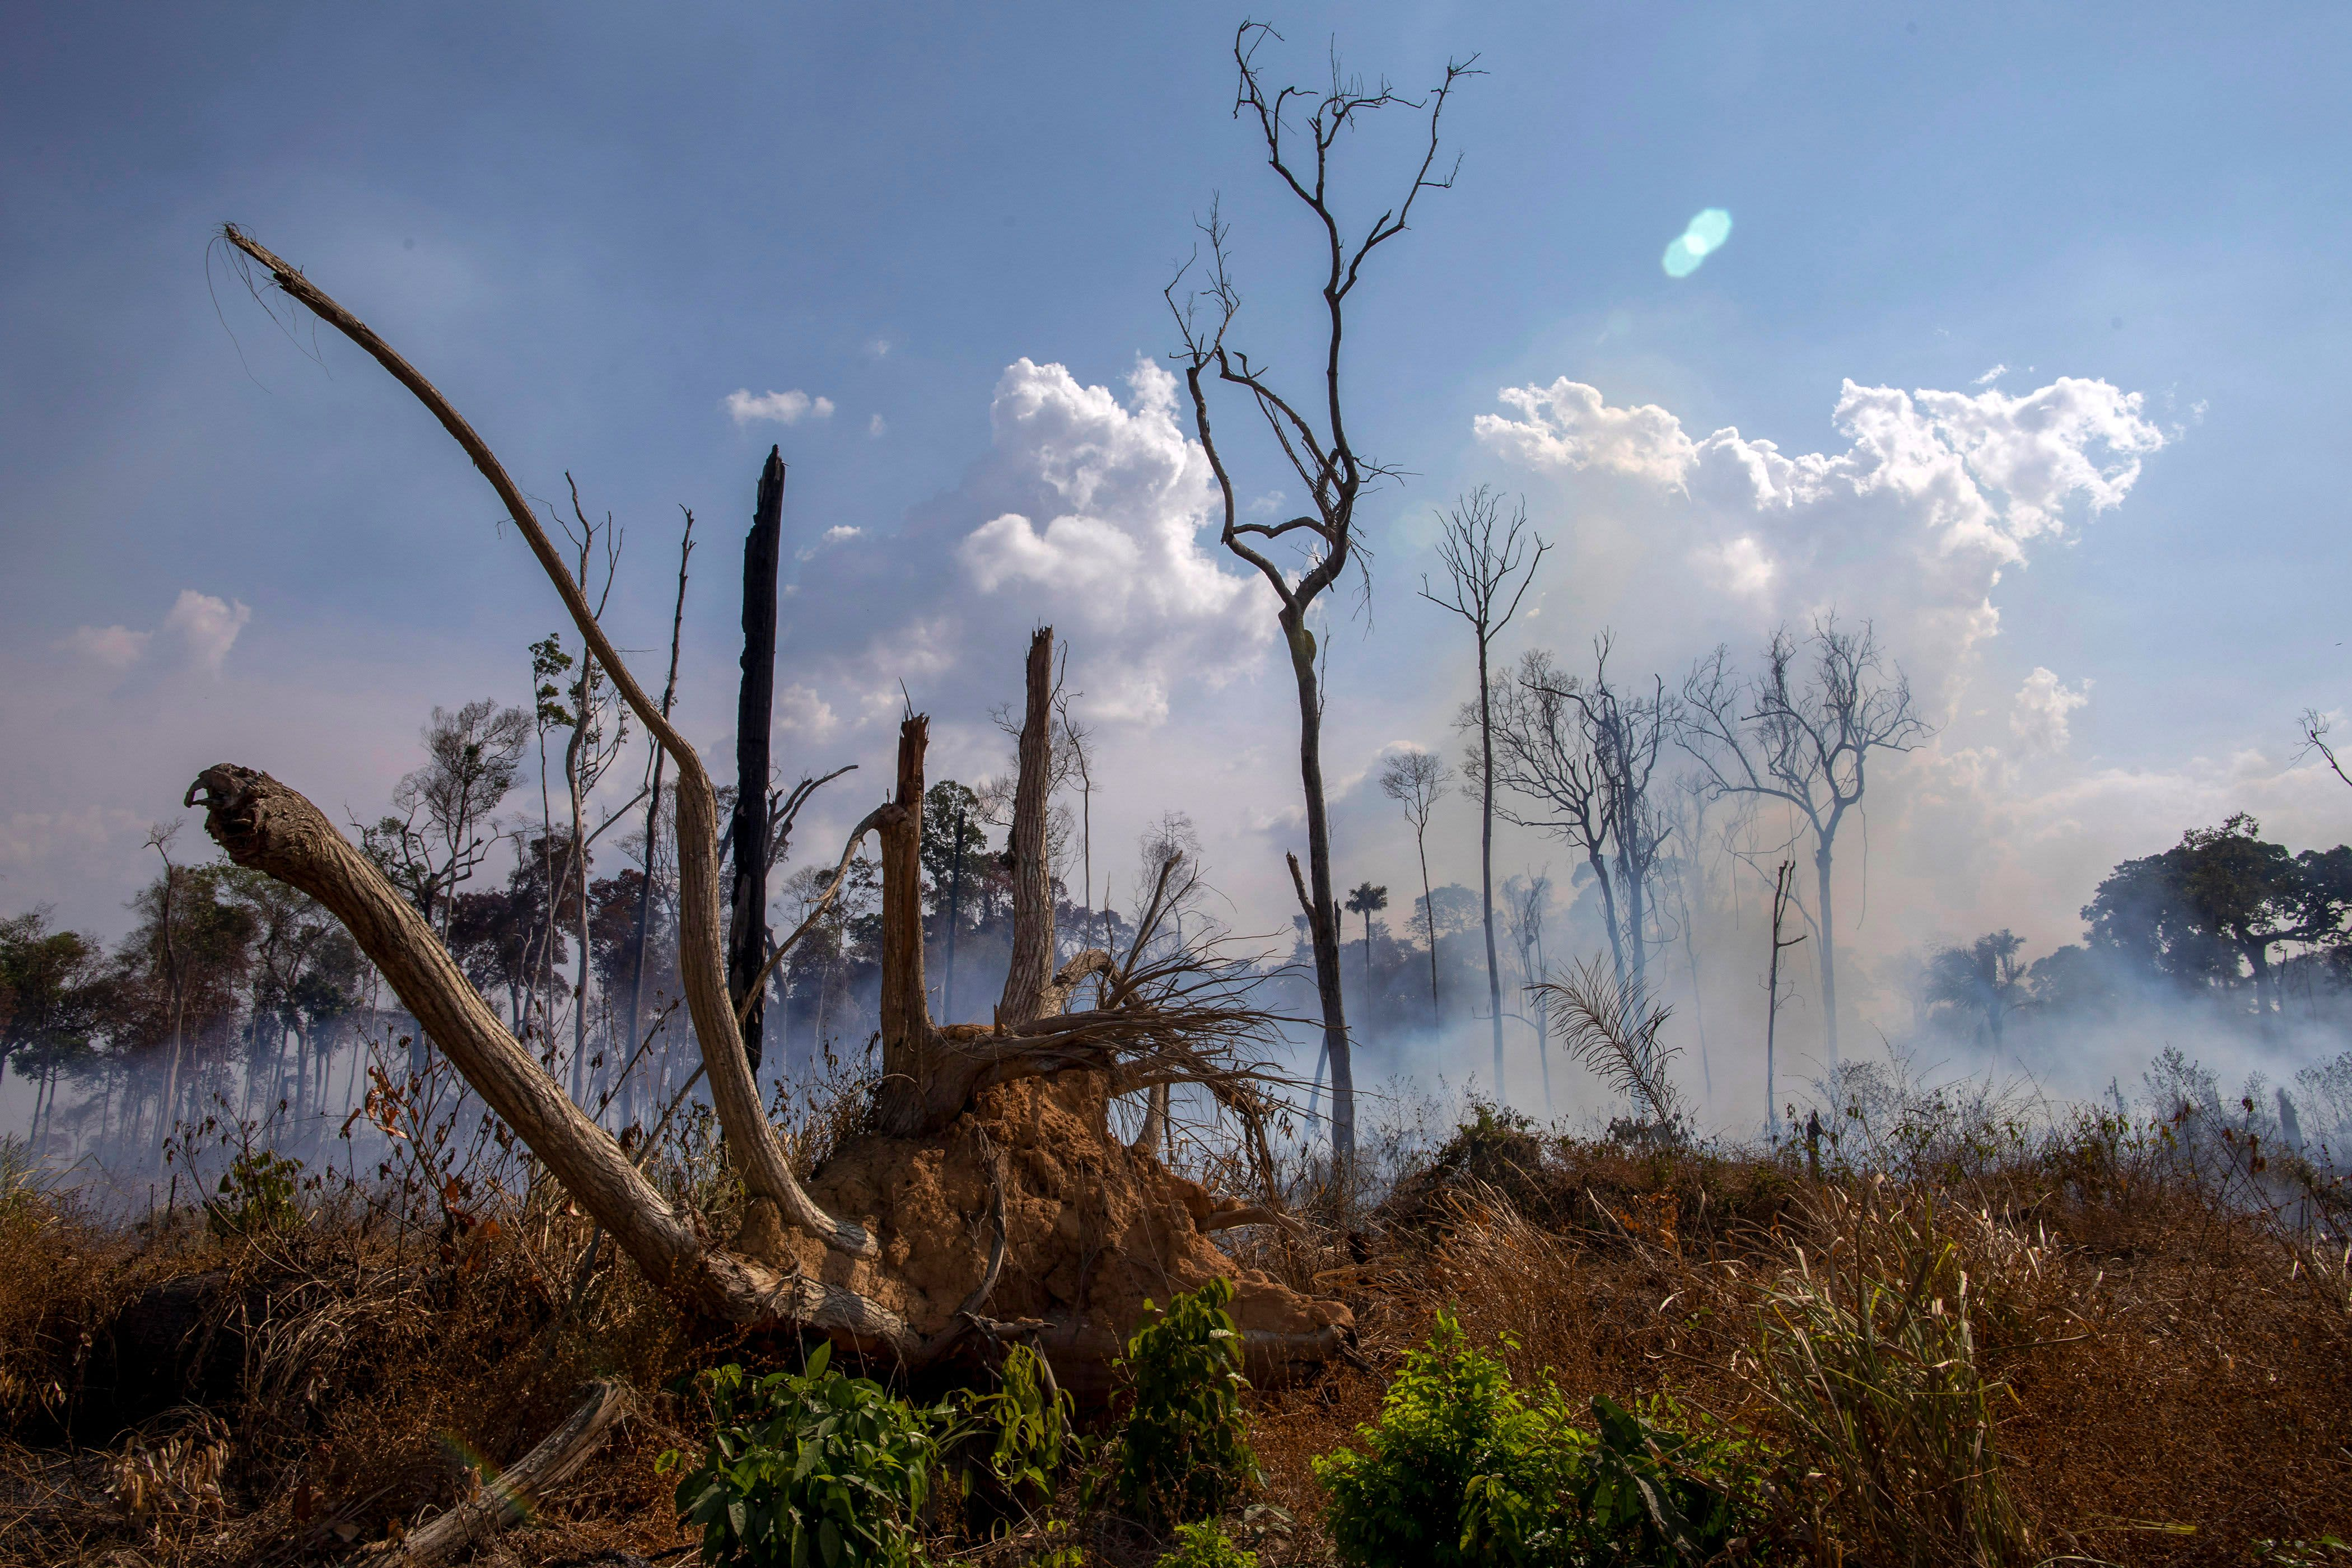 The Amazon rainforest is still on fire—here's how you can help